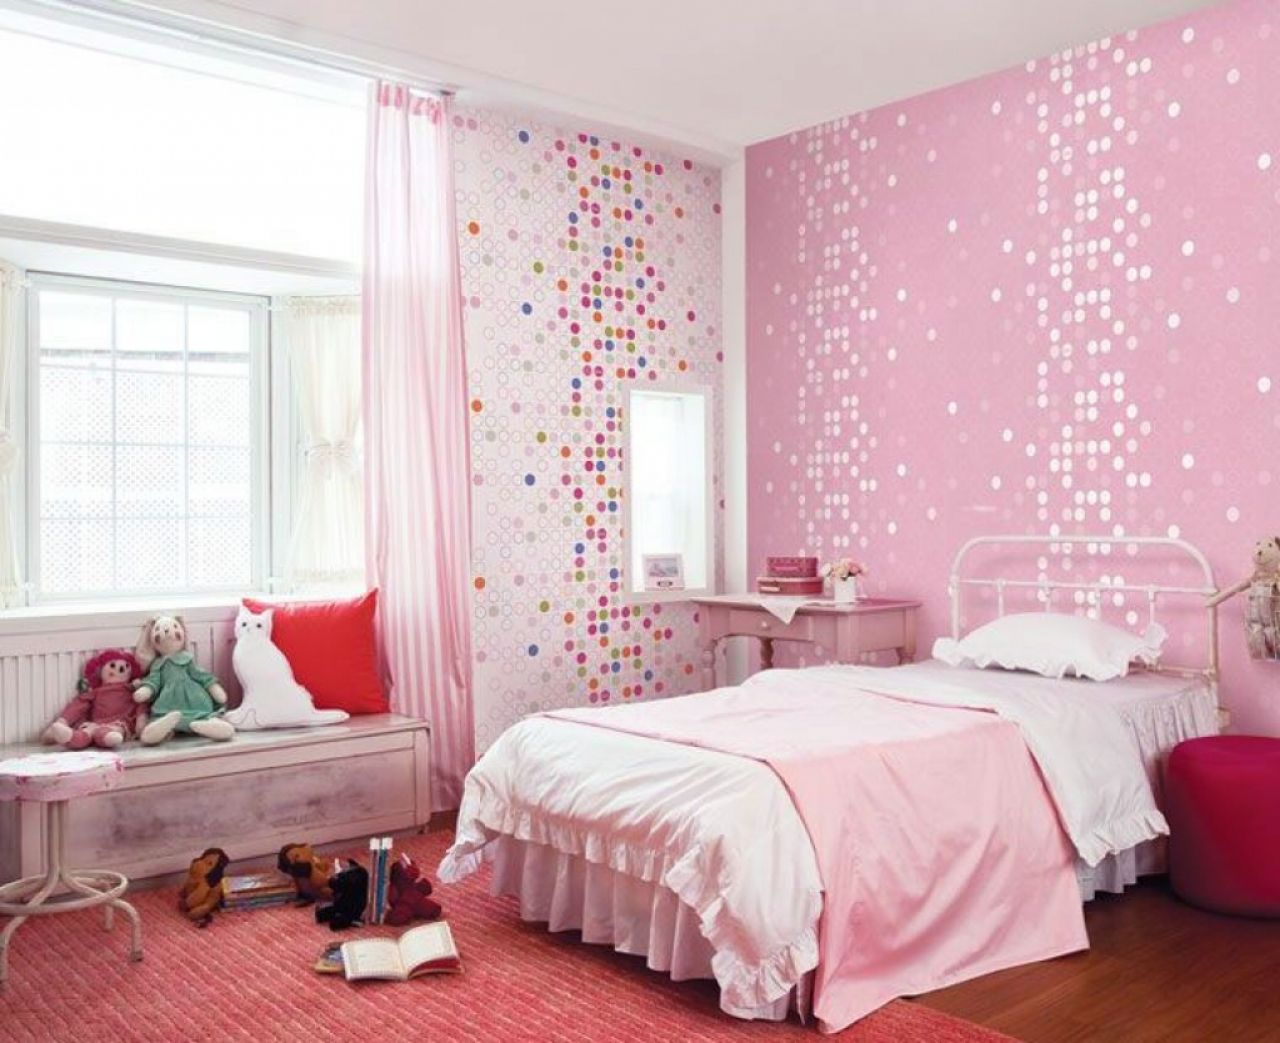 Room Funny Pink Dotty Wallpaper S Bedroom Home Idea Voolis